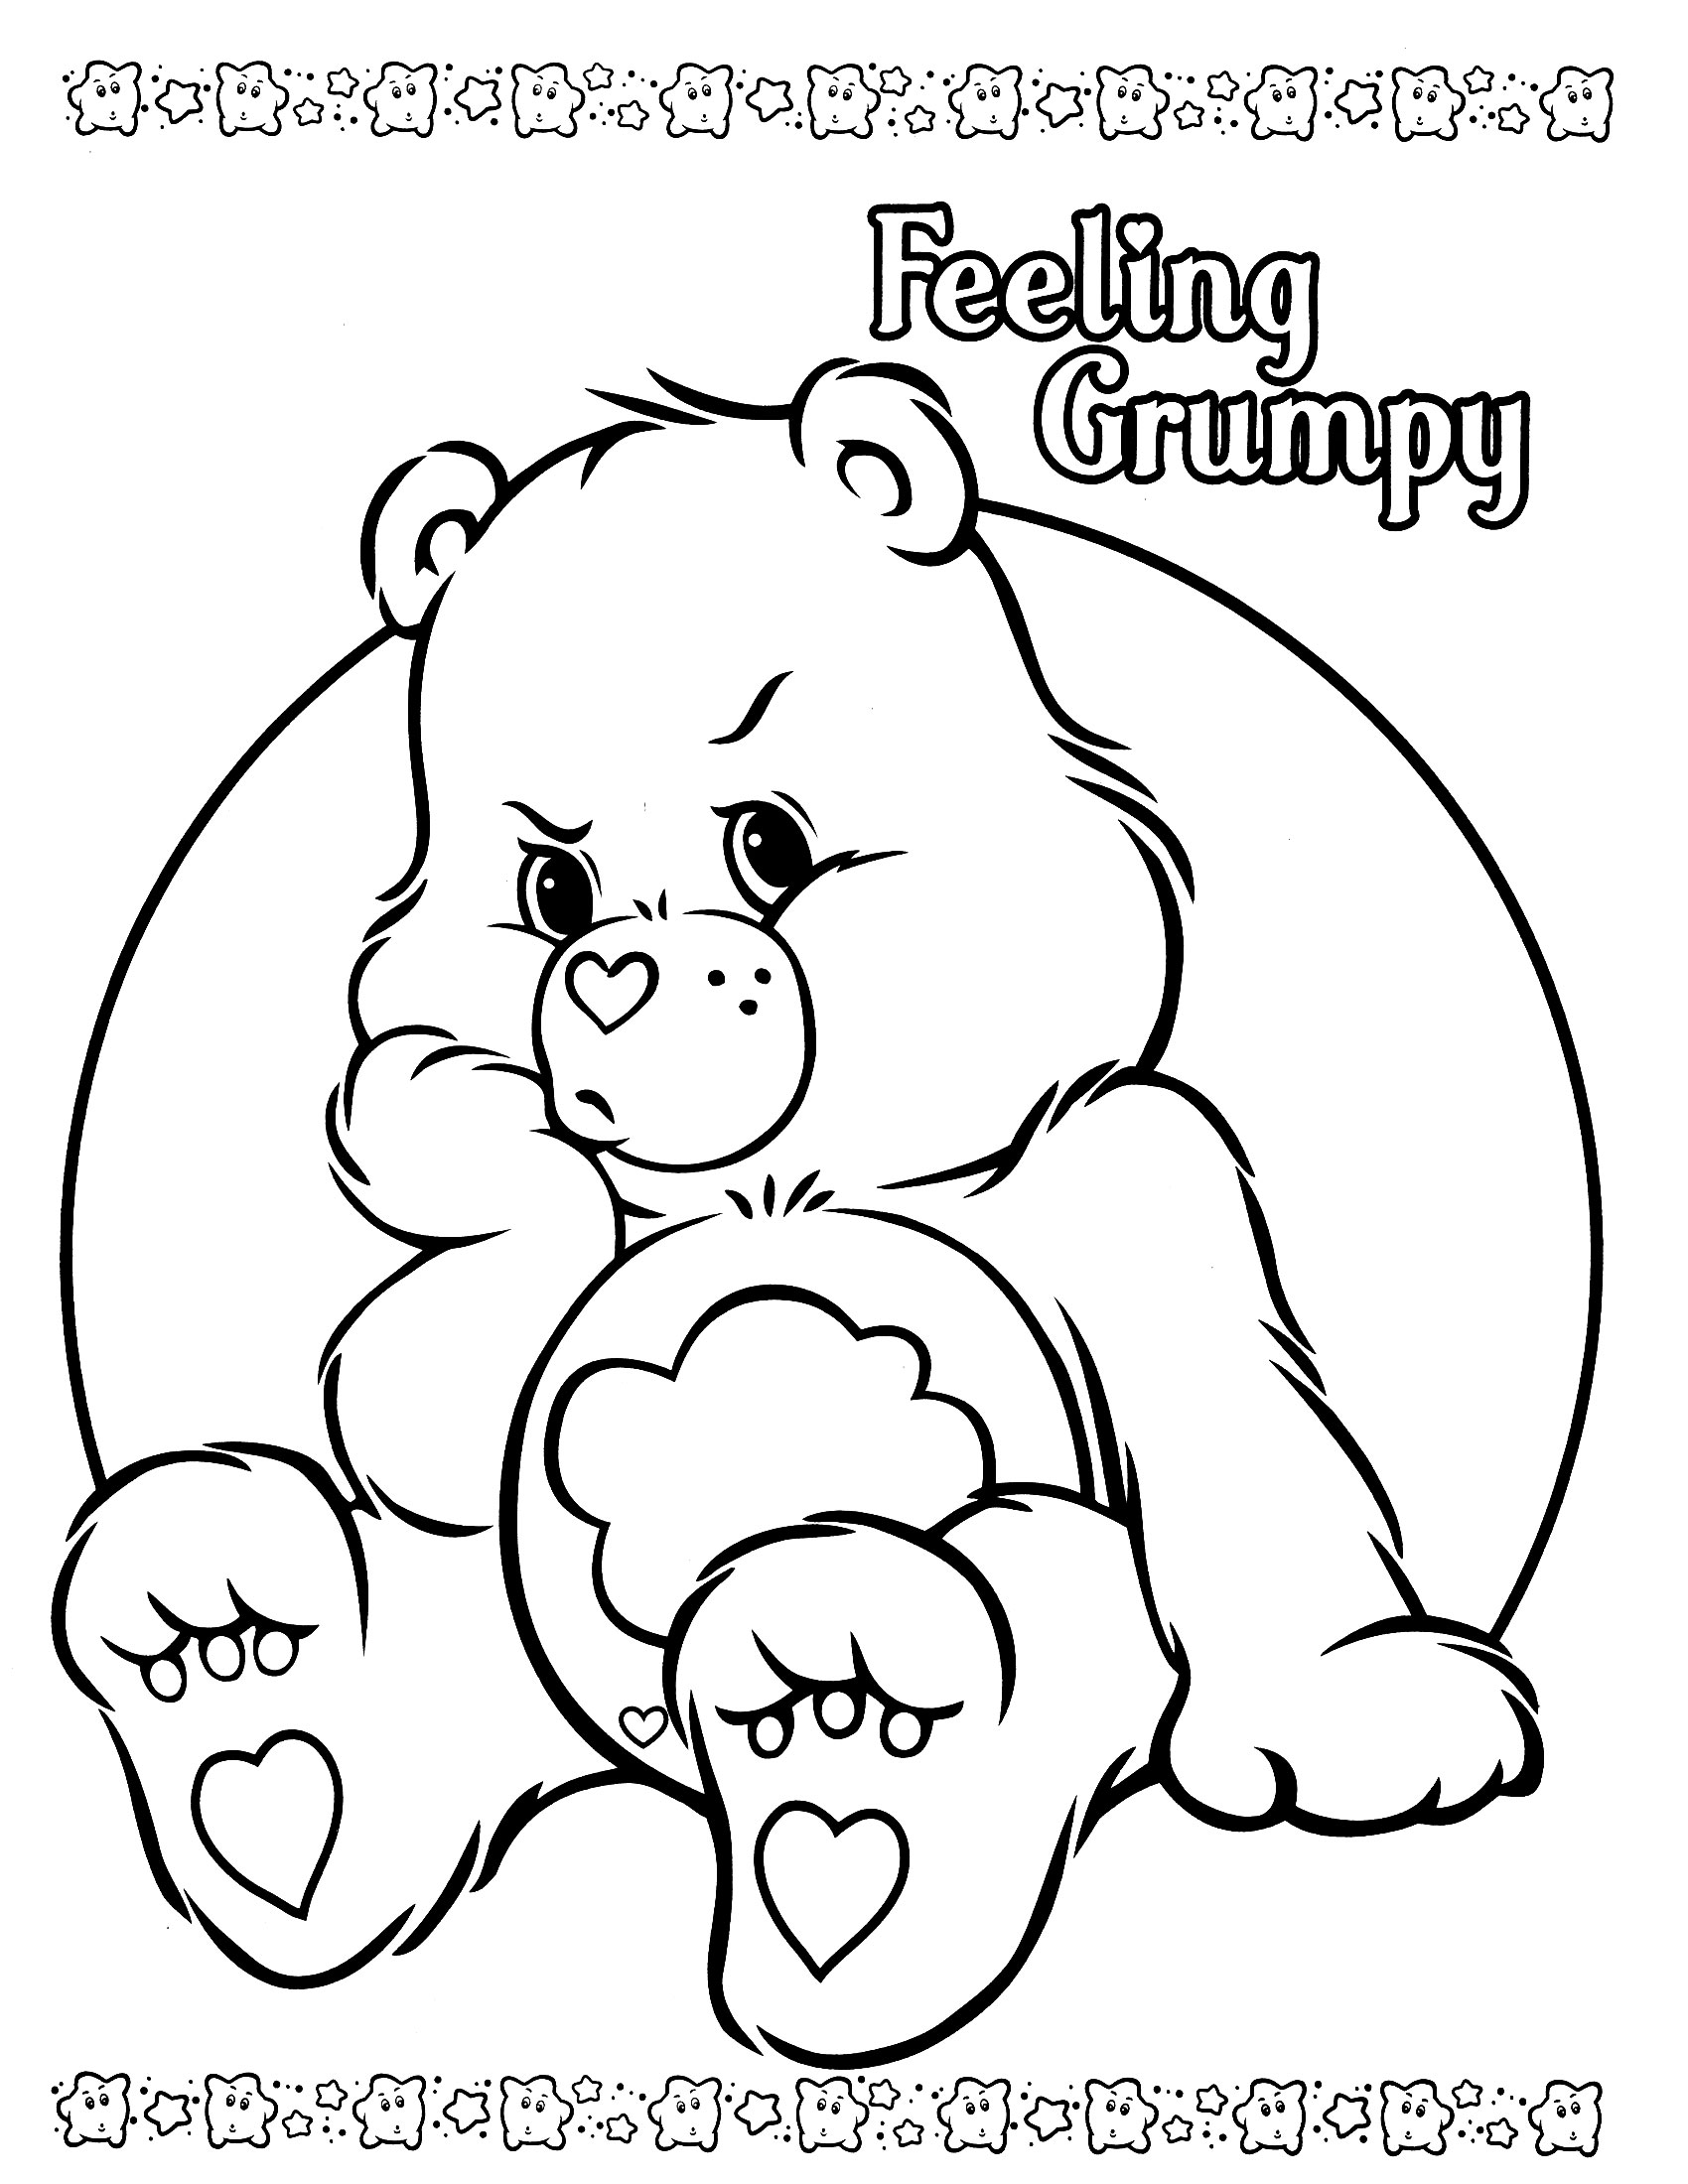 evil cear bears coloring pages - photo#5